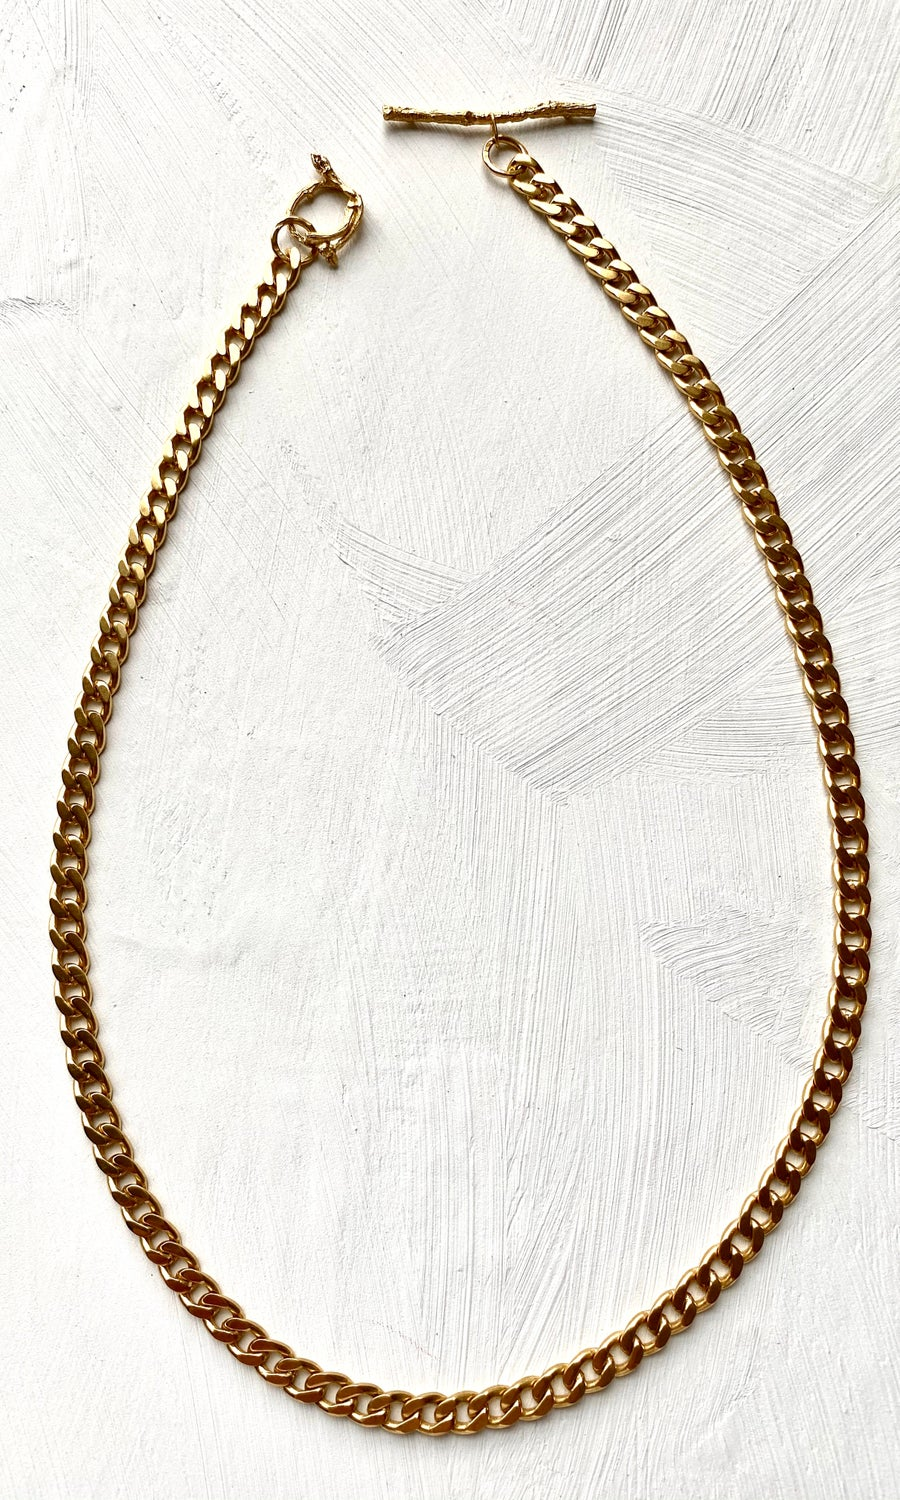 Image of Plethora necklace-Gold vermeil 1